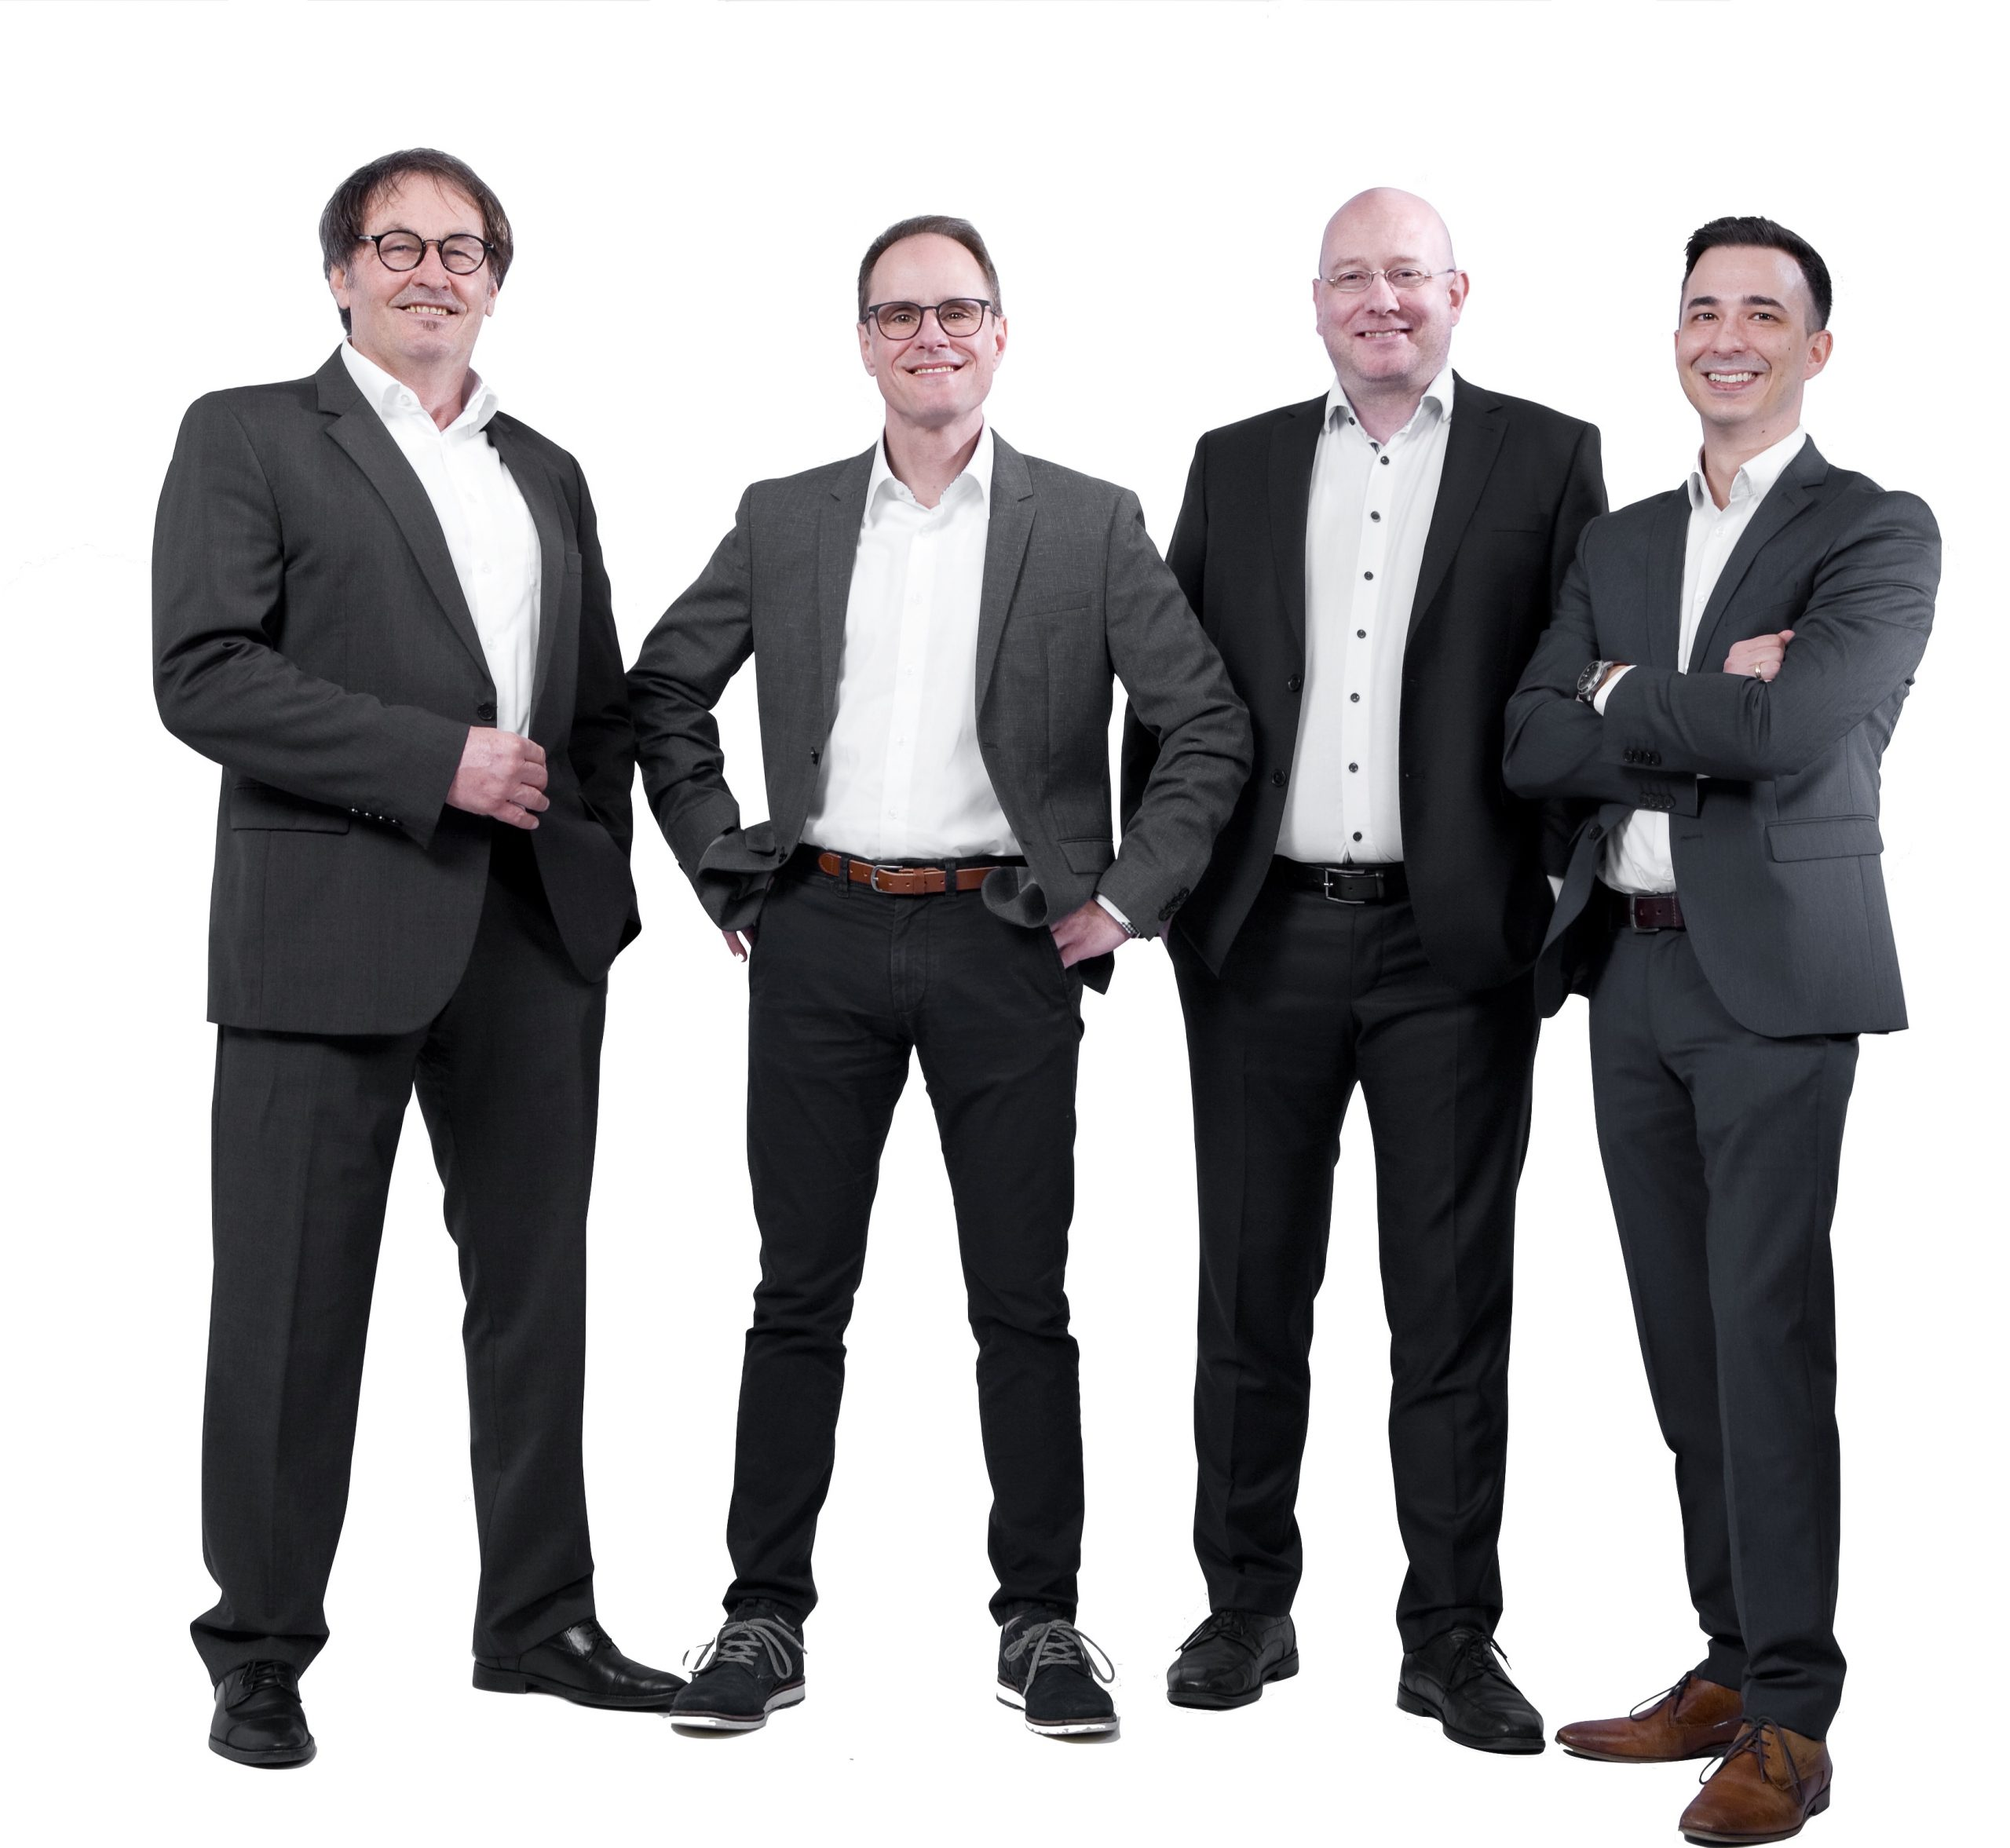 The Founding Team of PLUS4DATA GmbH